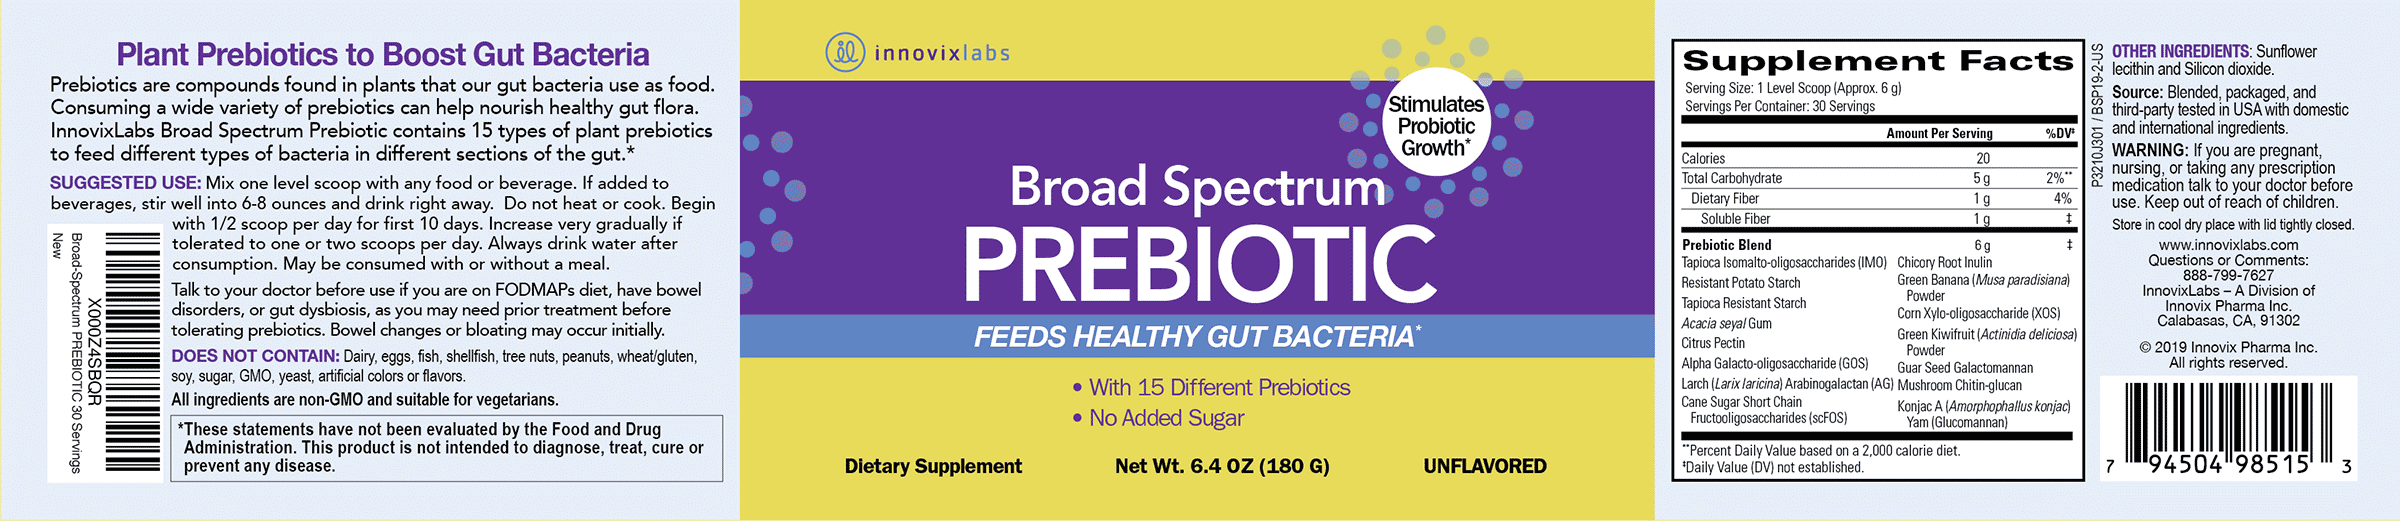 Broad Spectrum Prebiotic label